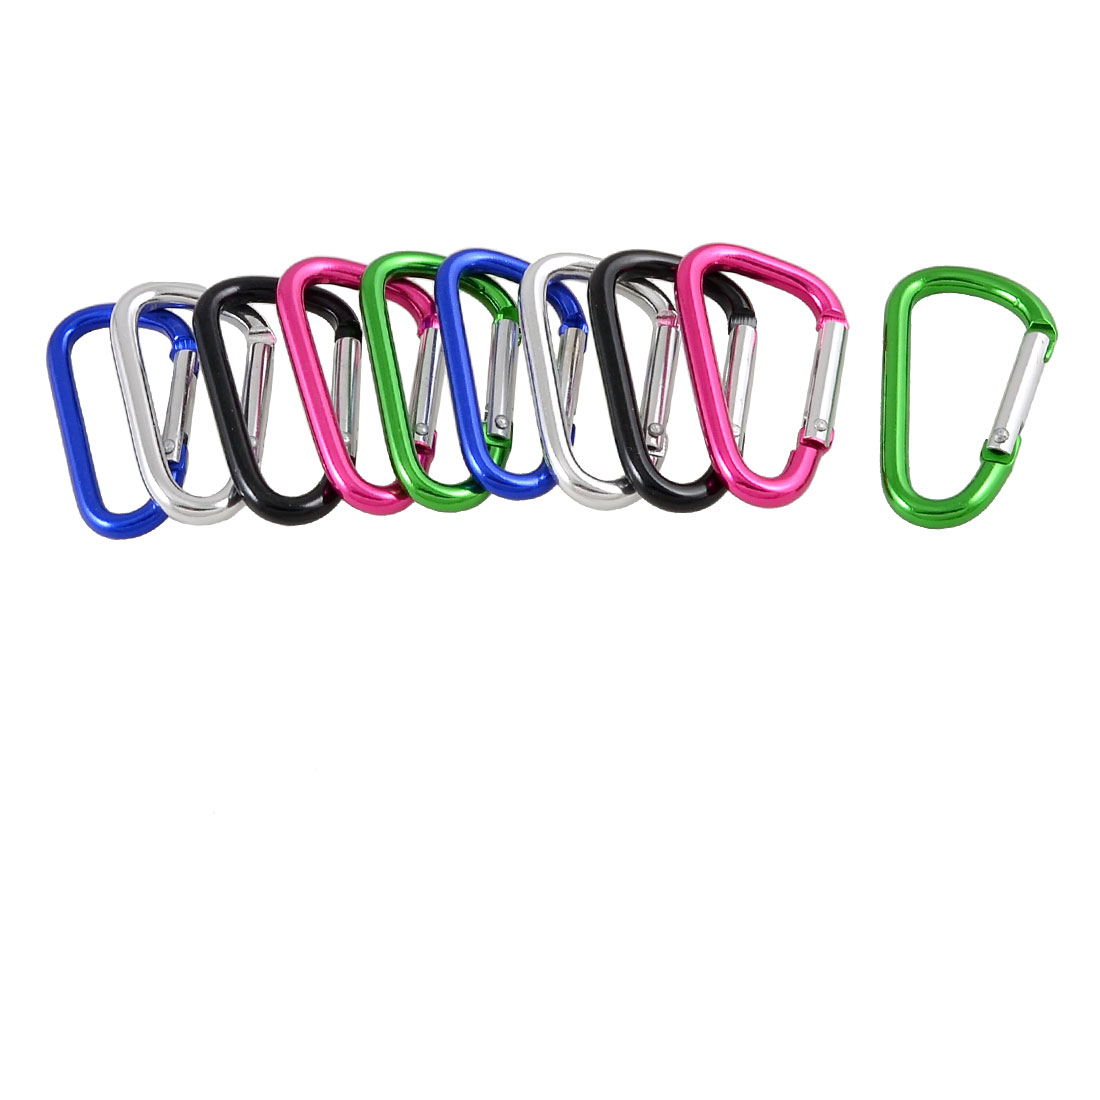 10 Pcs Colorful D Shaped Aluminum Alloy Fishing Traveling Carabiner Keychain